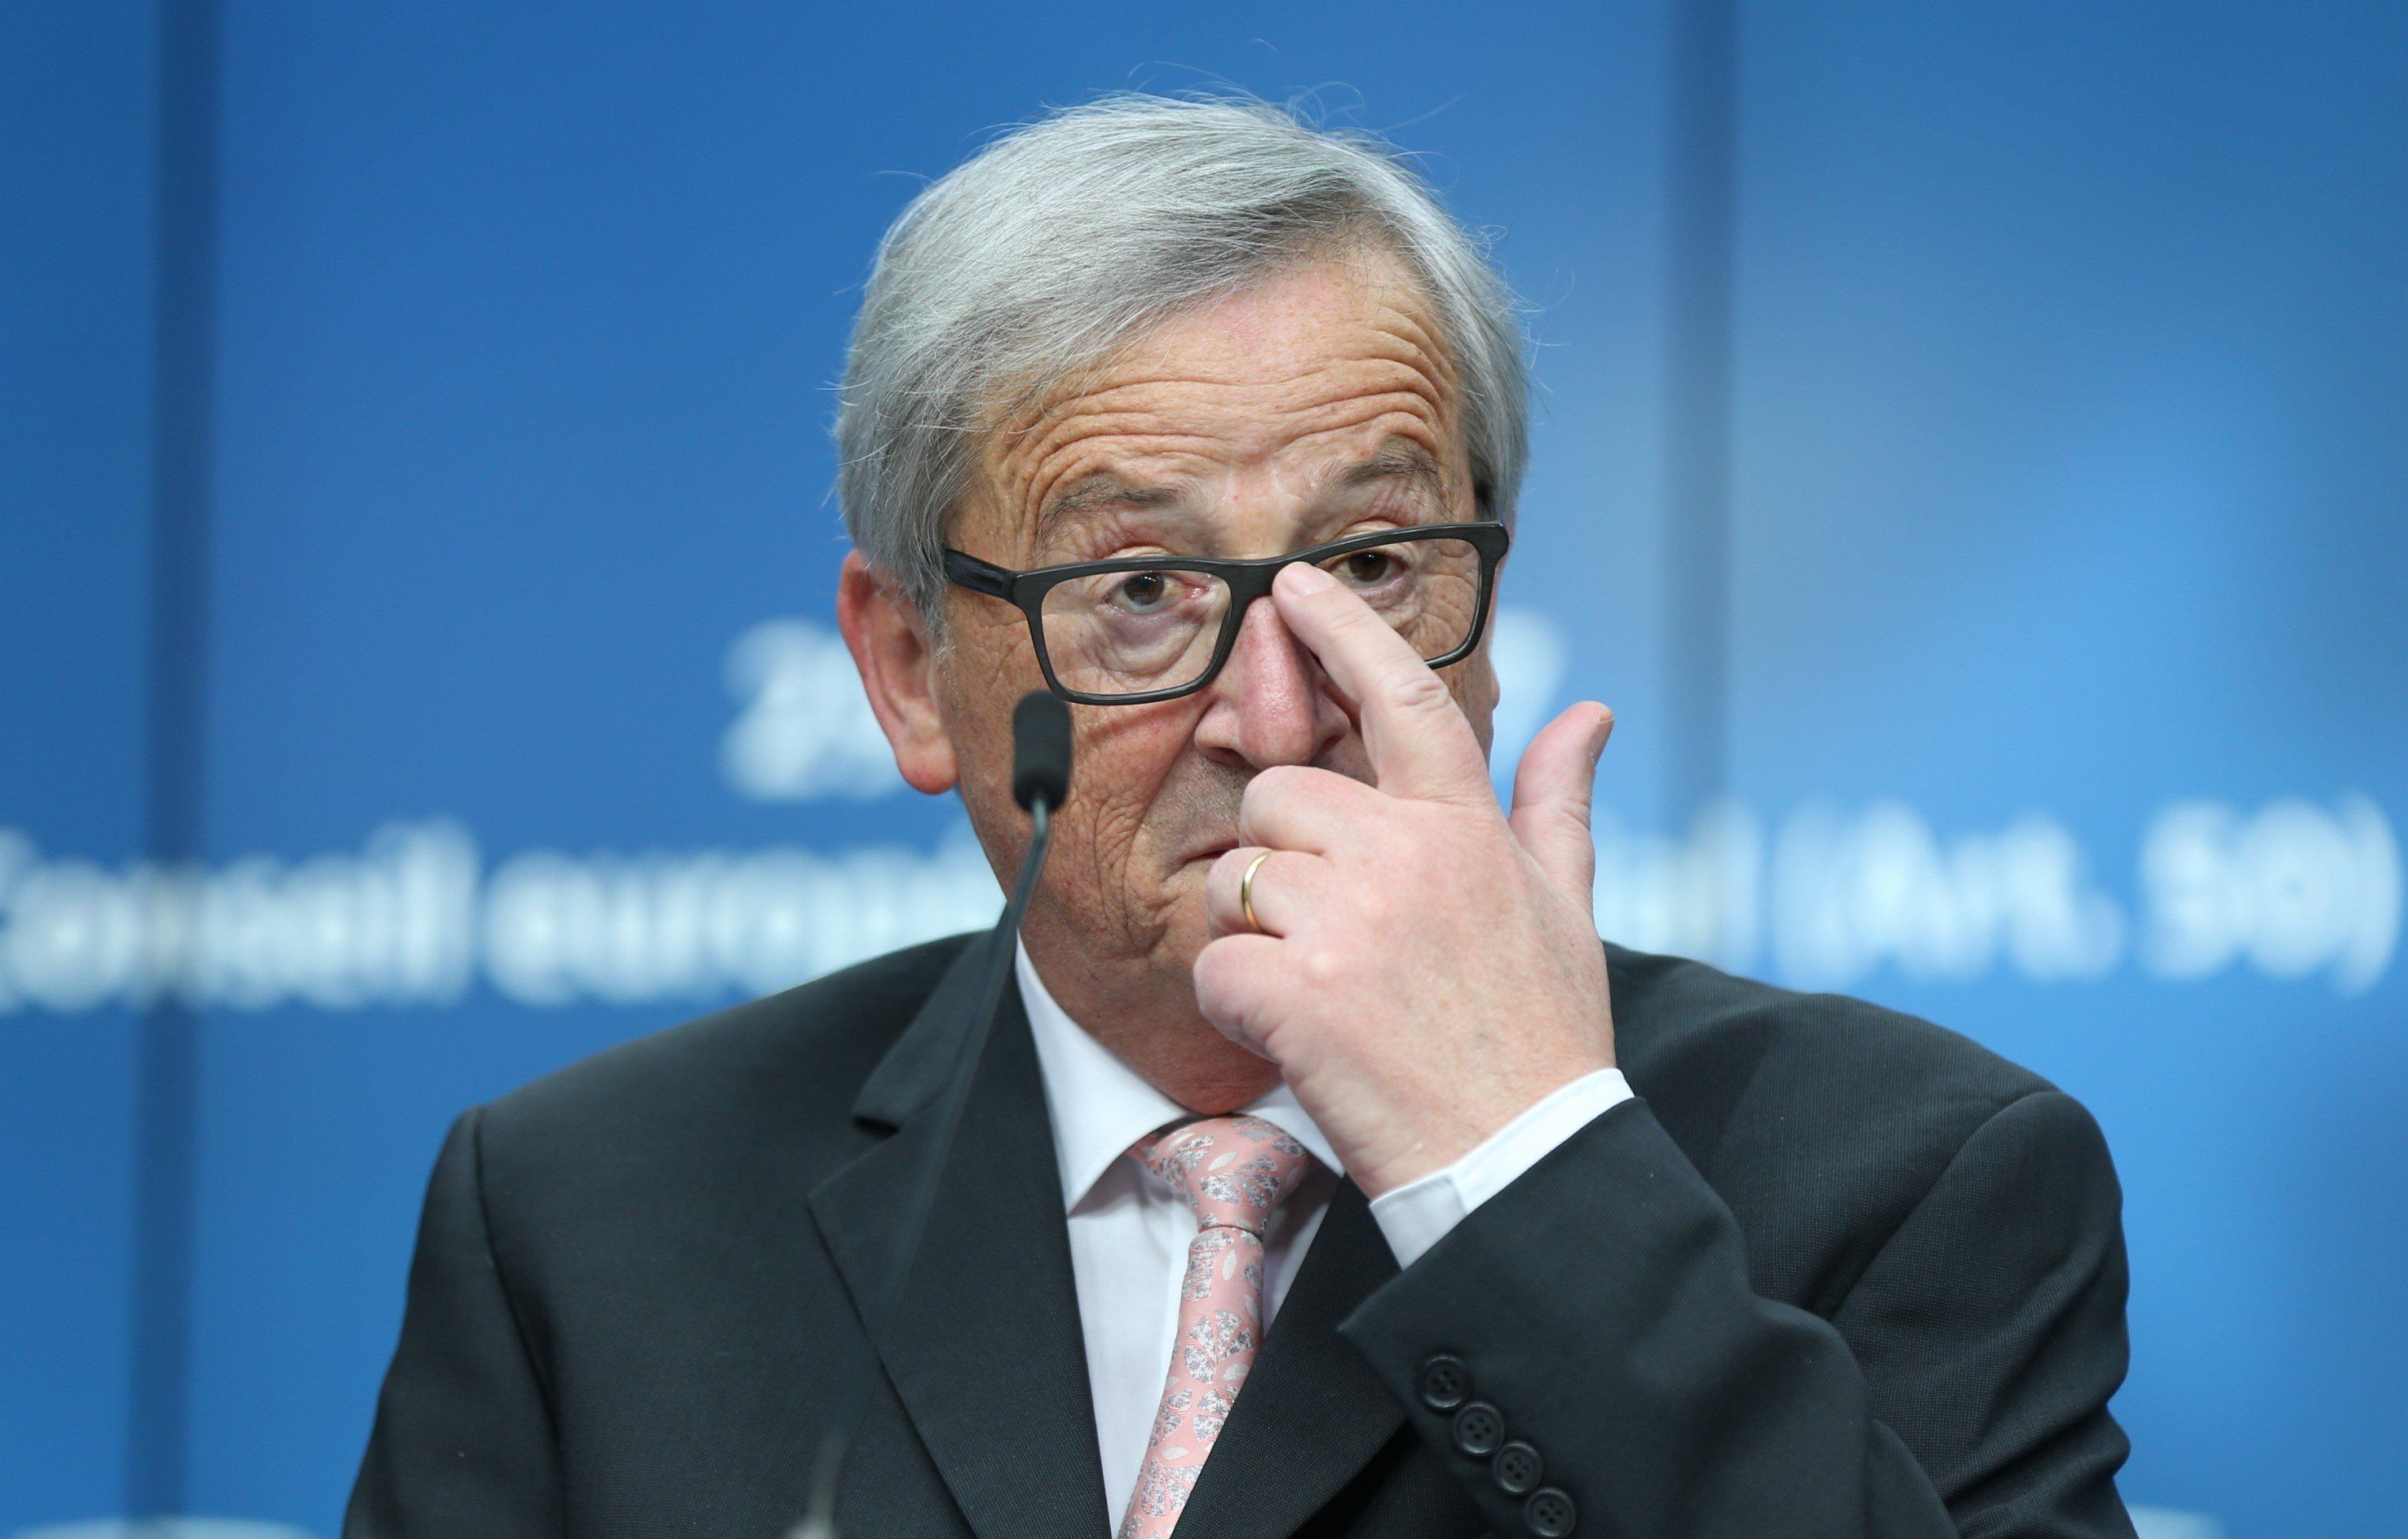 The EU President Joked About English After Brexit And People Got Very